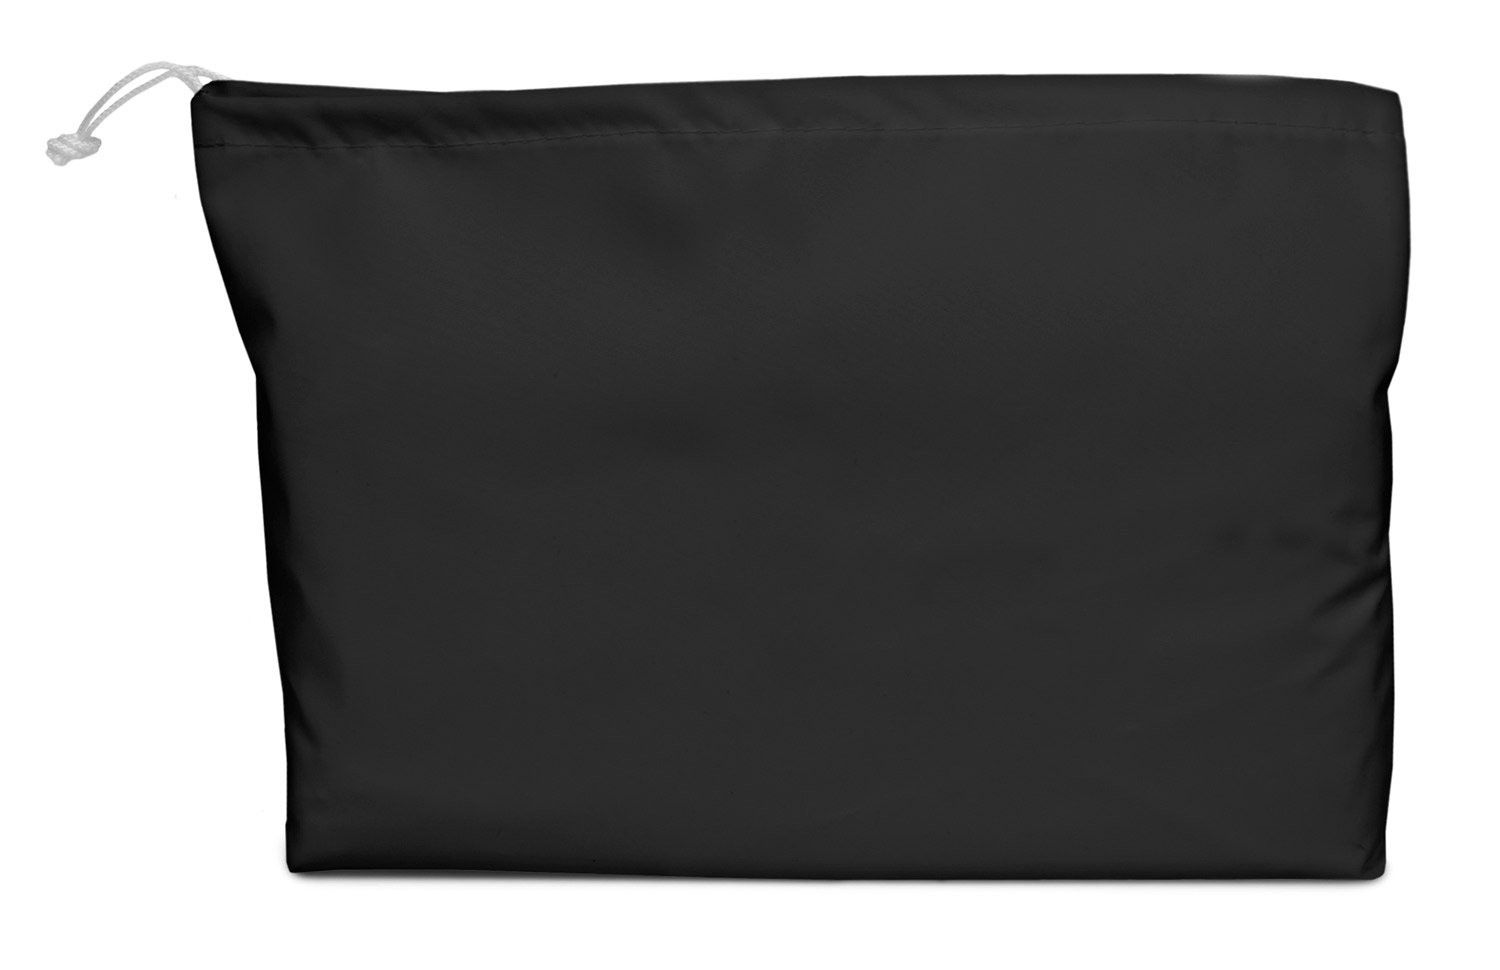 KoverRoos Weathermax 74207 8-Feet Bench Cover, 96-Inch Width by 25-Inch Diameter by 36-Inch Height, Black by KOVERROOS (Image #2)